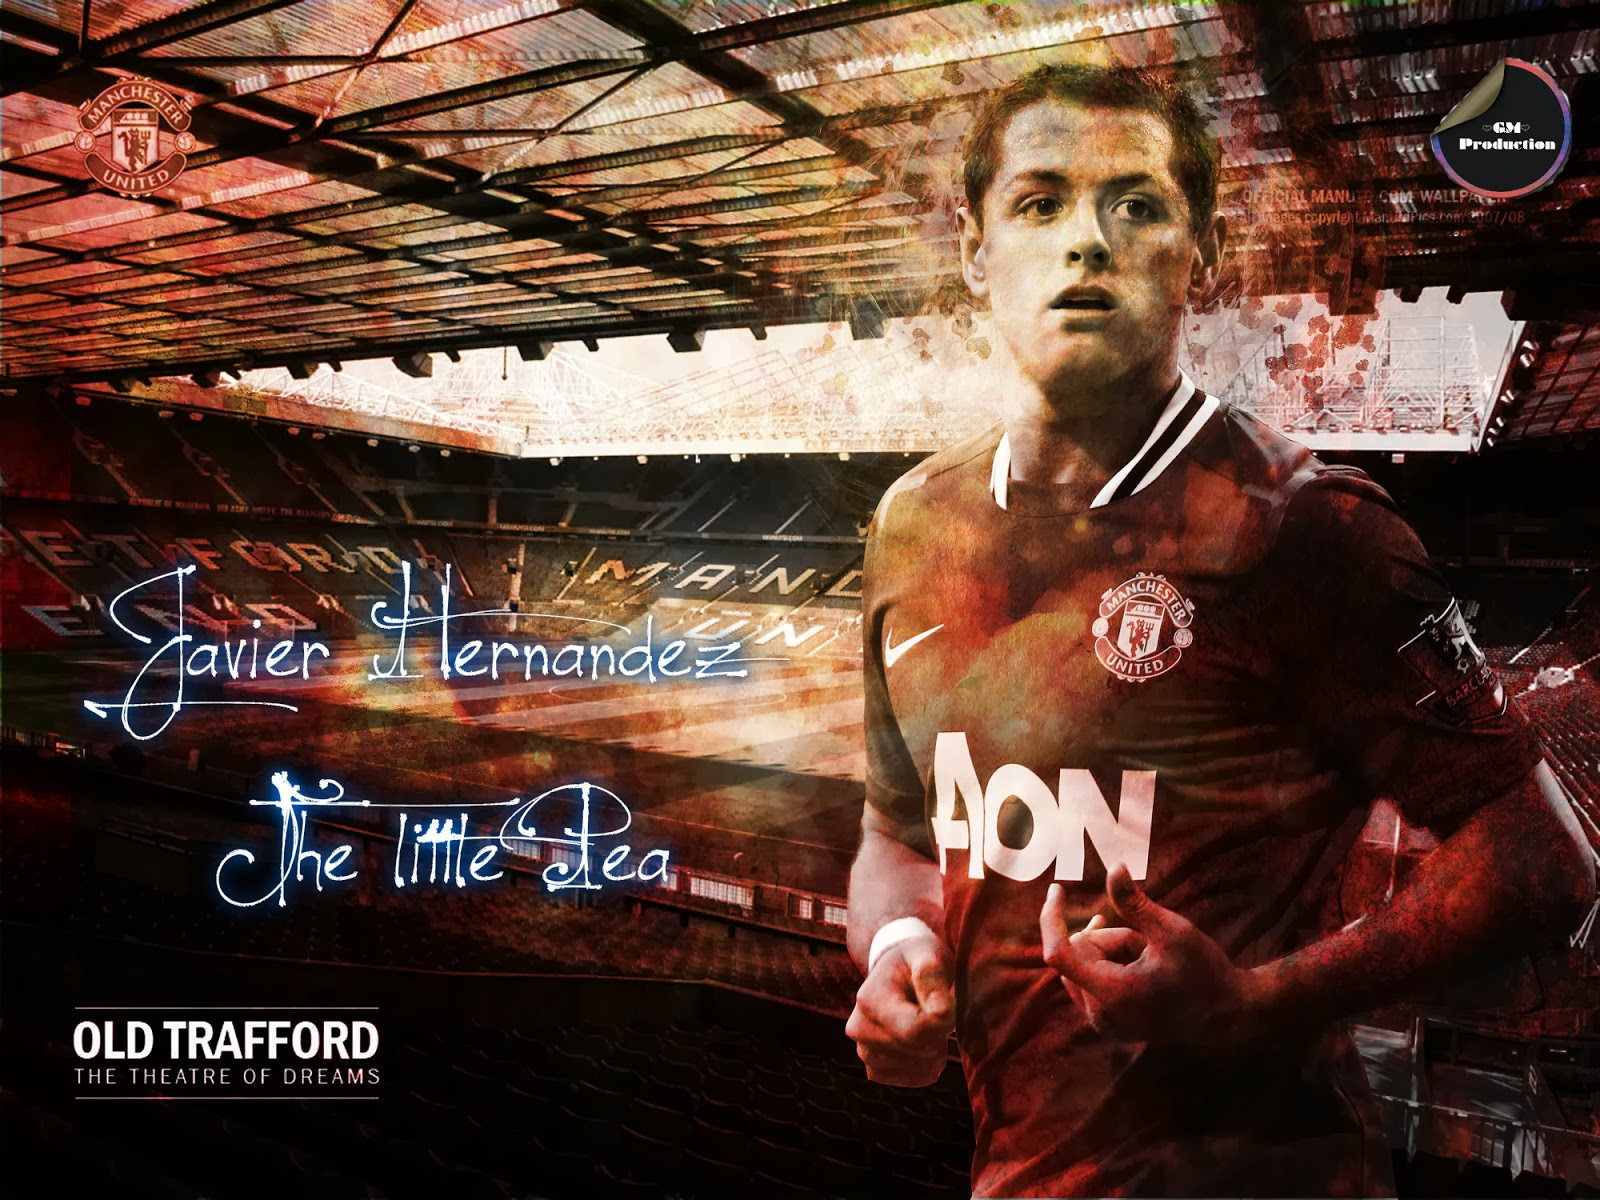 Wallpapers And More...: Javier Hernandez (Chicharto